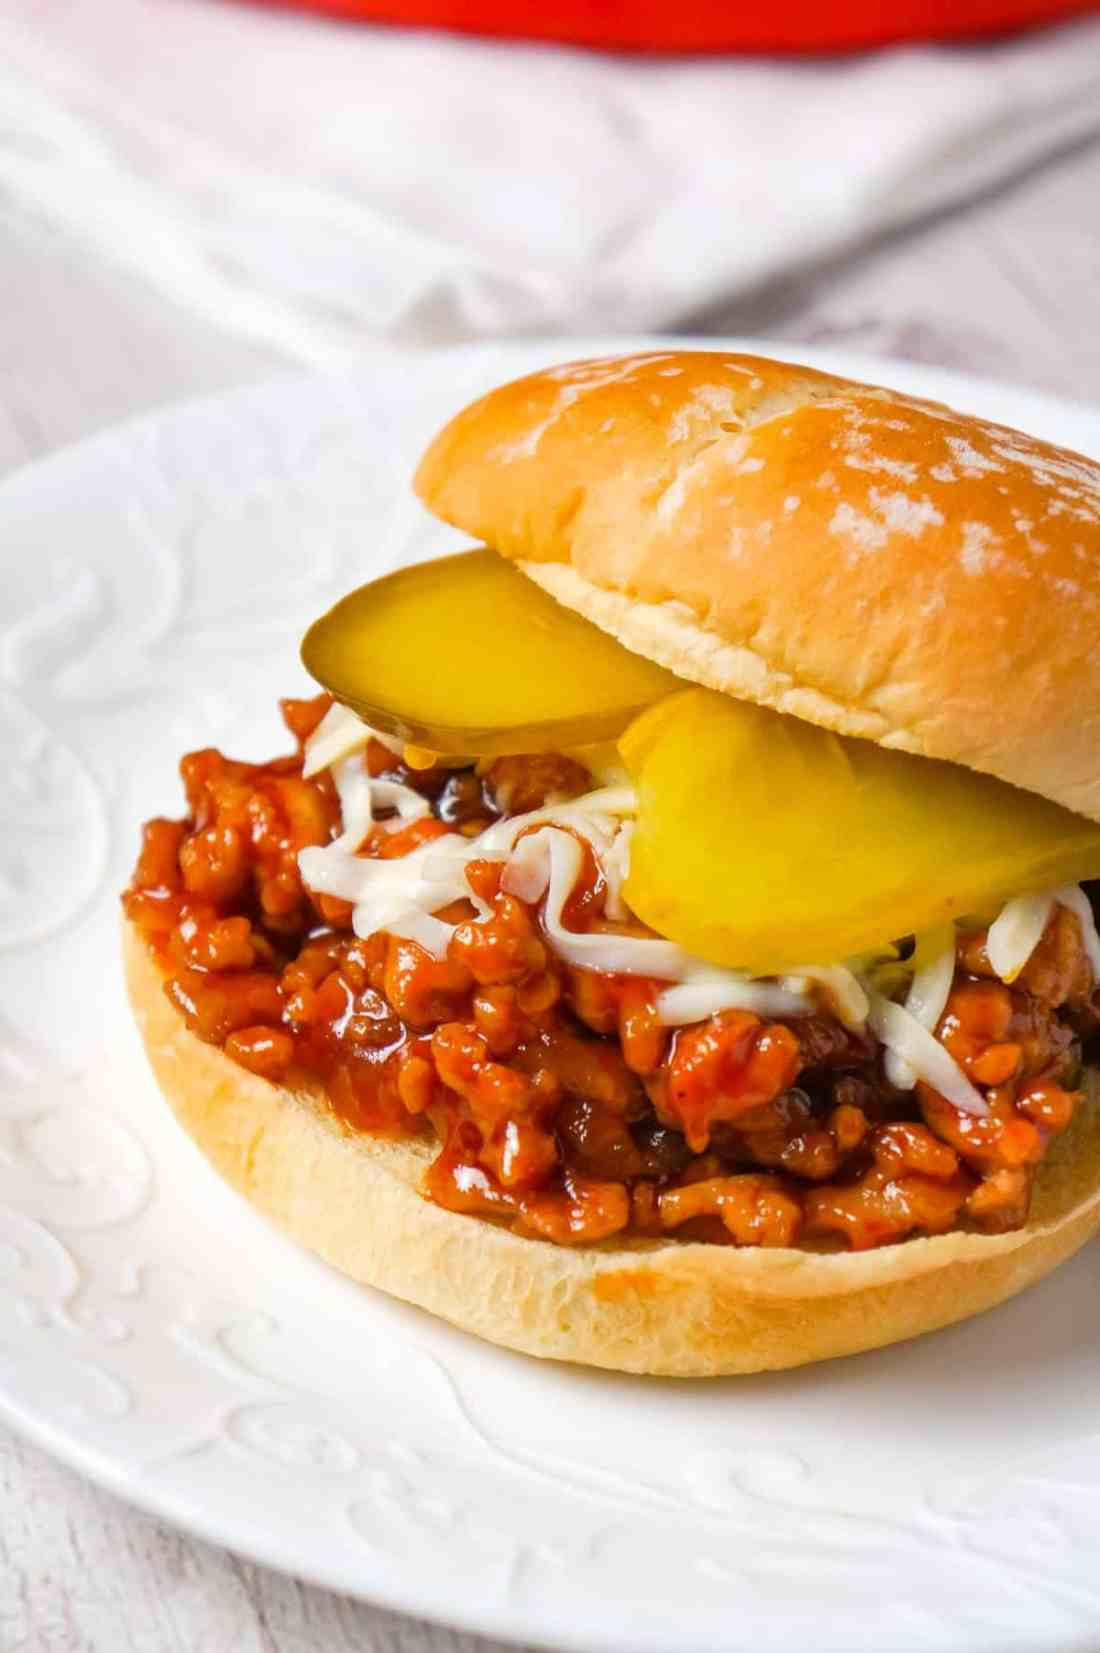 Honey BBQ Chicken Sloppy Joes are an easy weeknight dinner recipe using ground chicken, tossed in honey and BBQ sauce and topped with mozzarella cheese and dill pickles.